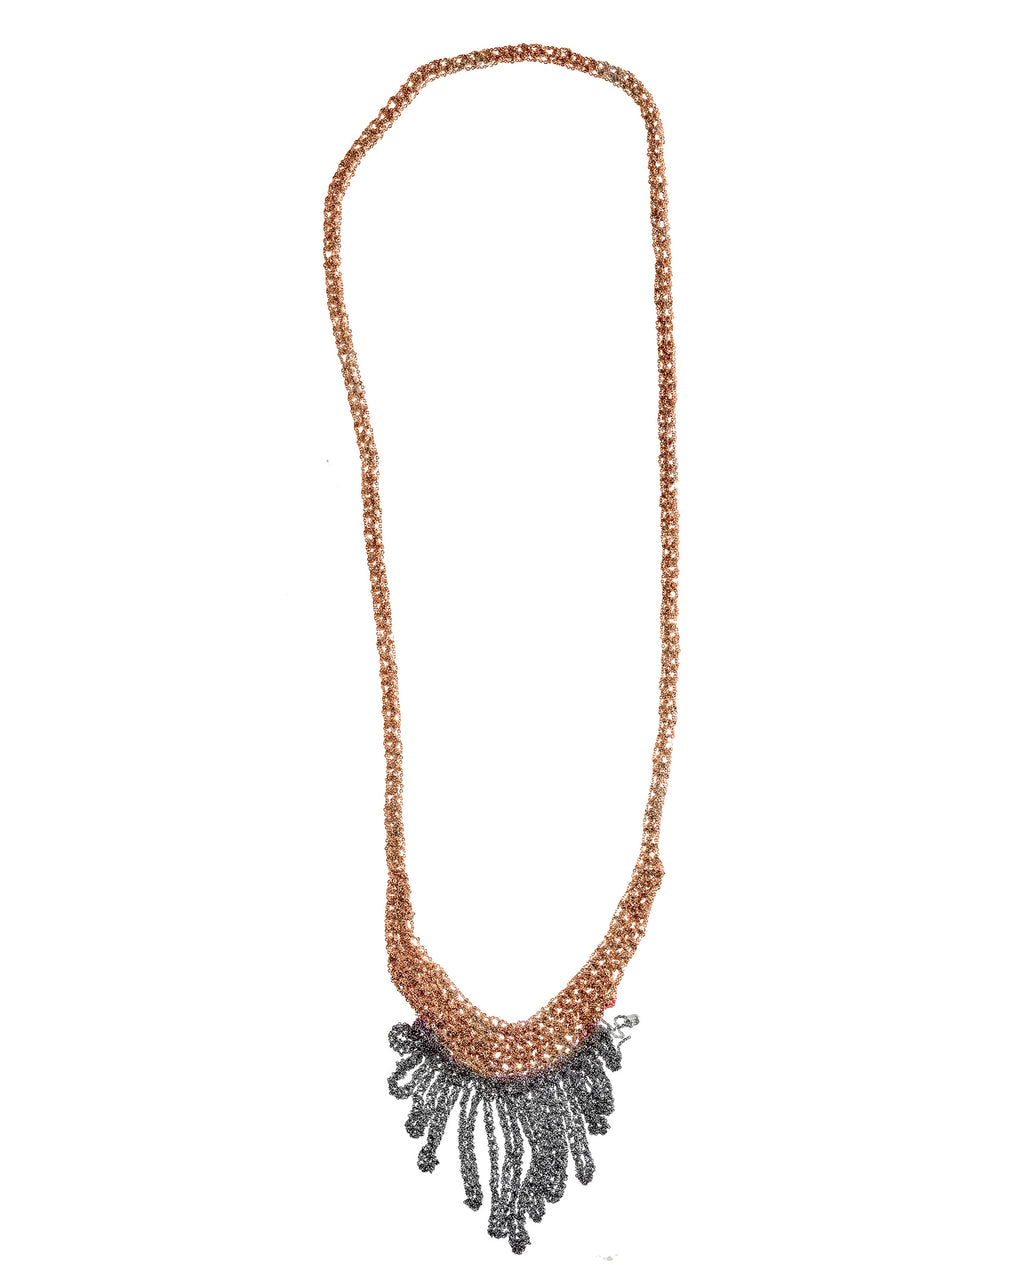 Small Fringe Necklace in Rose Gold + Faded